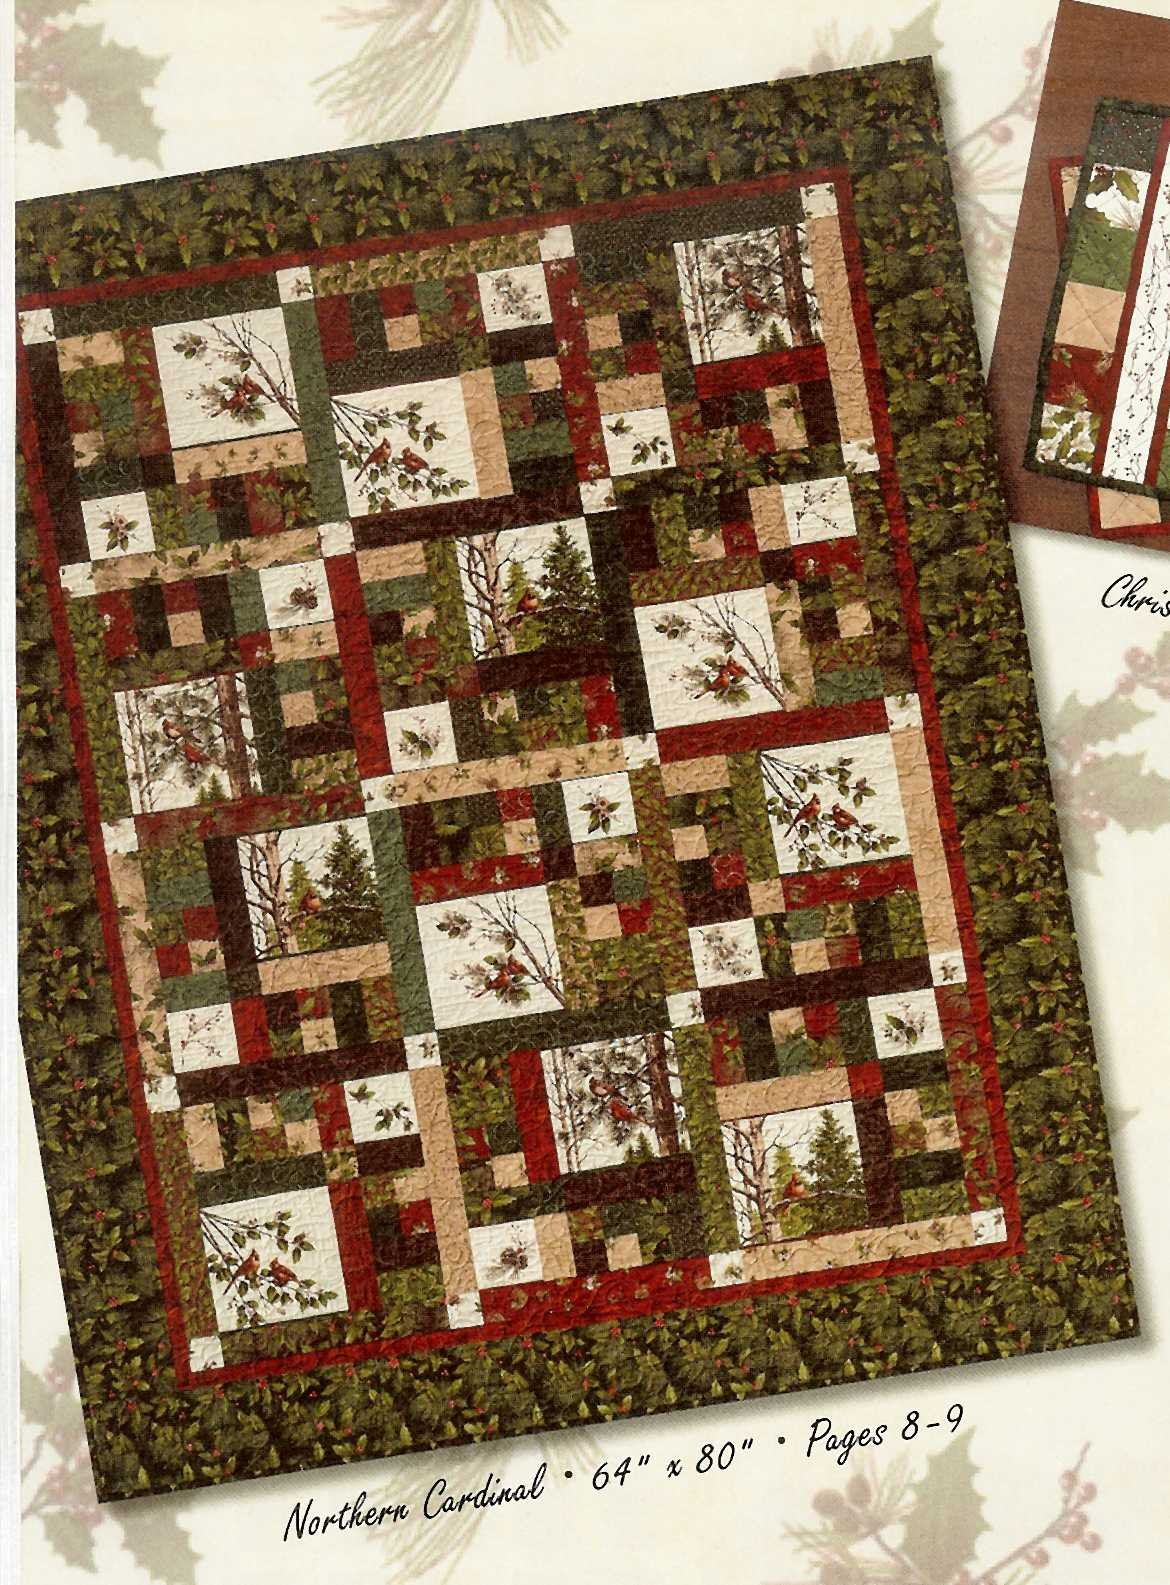 Northern cardinal quilt kit - Quilt rits ...